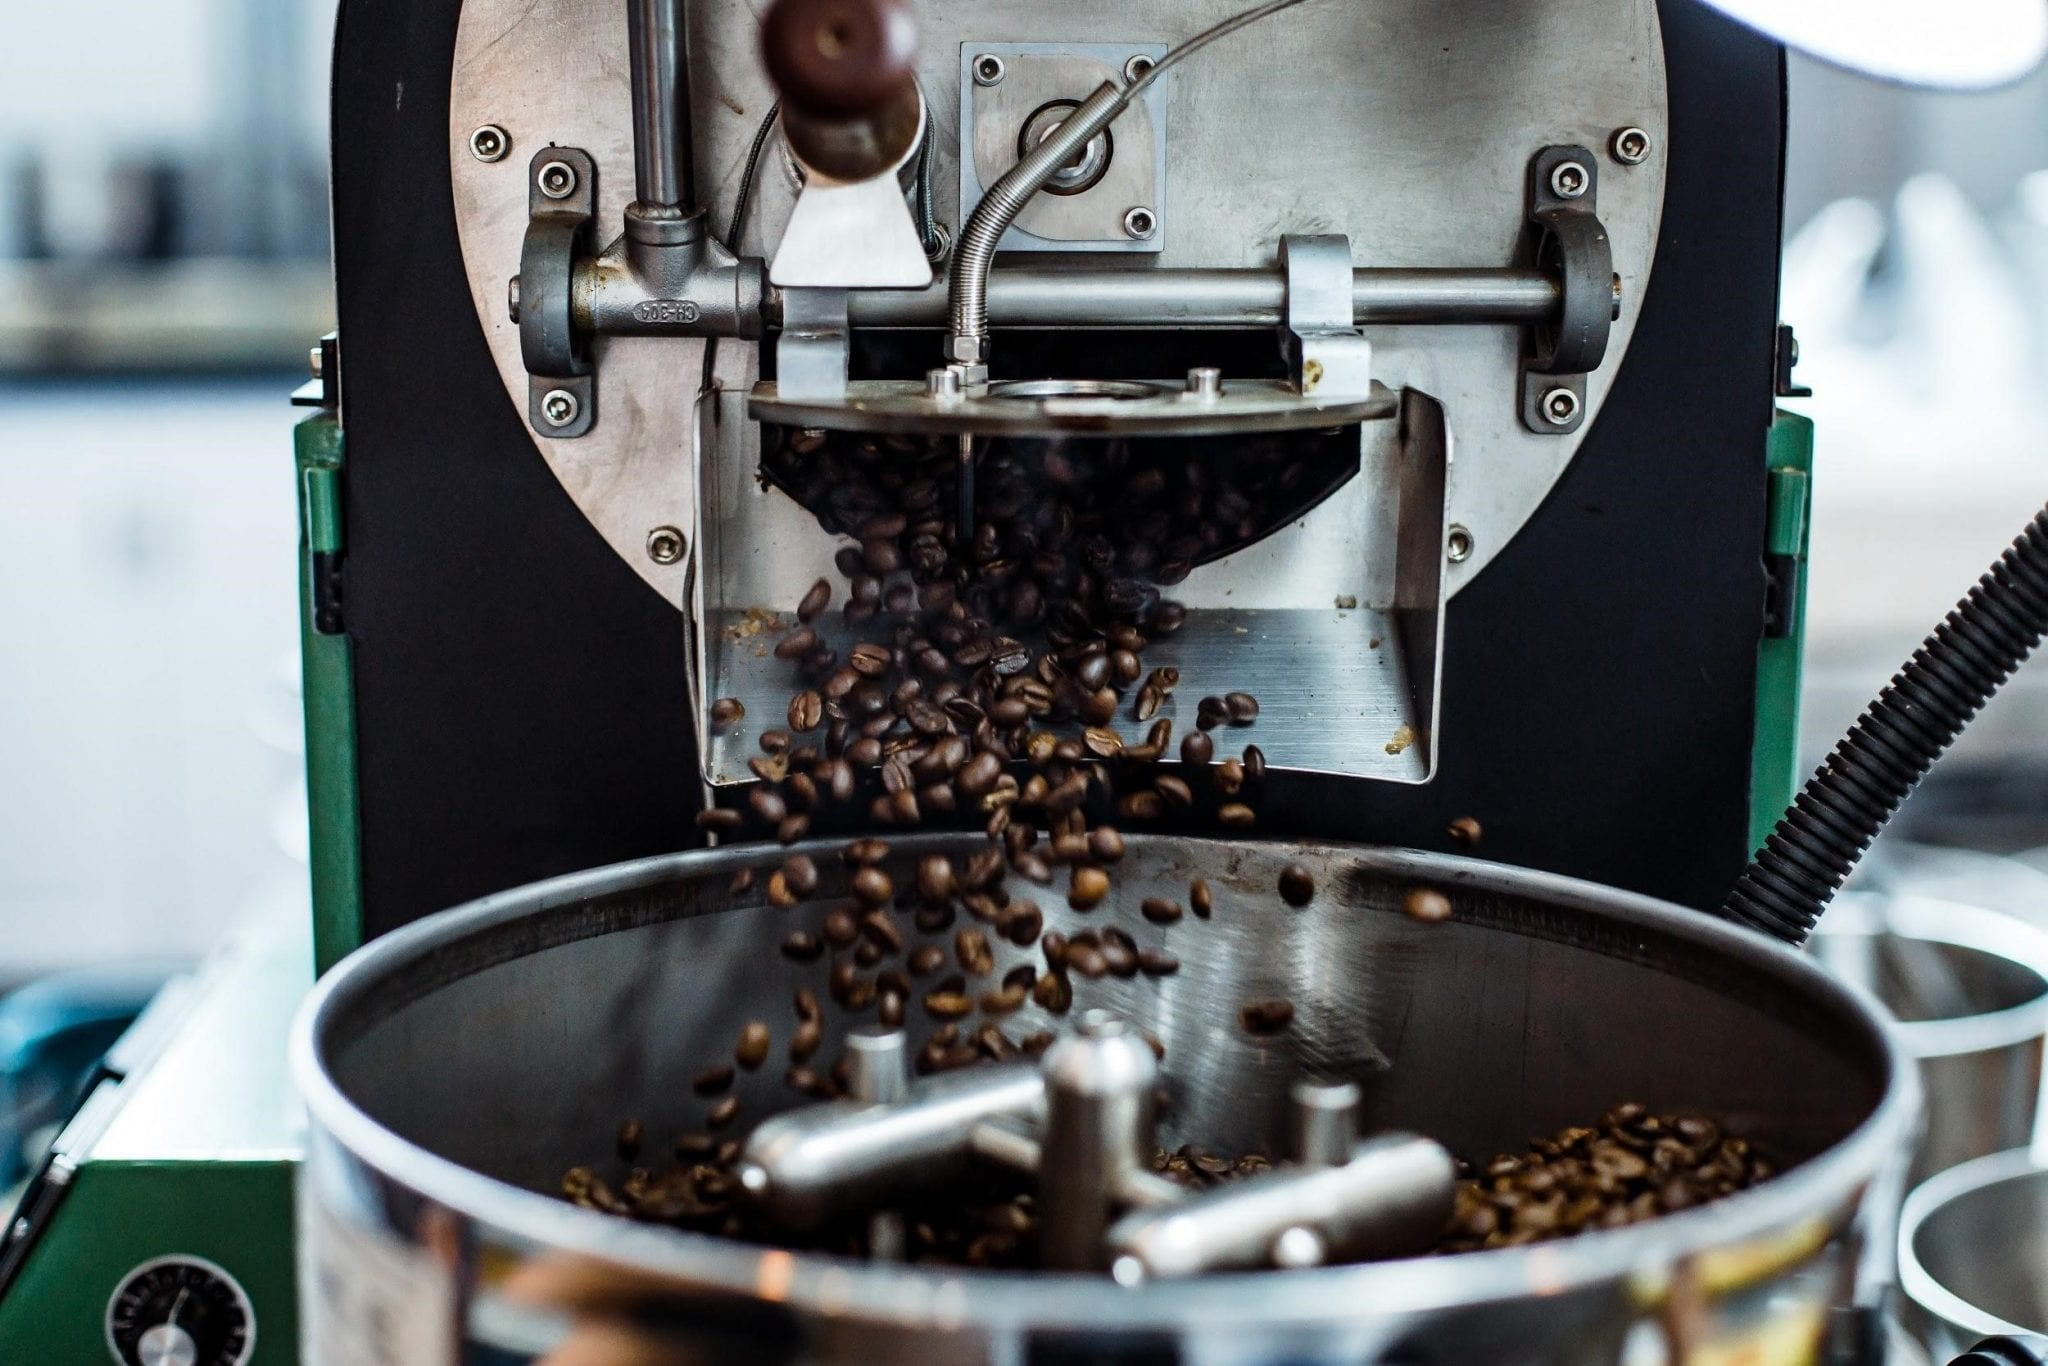 Roasted coffee beans falling into the cooling tray